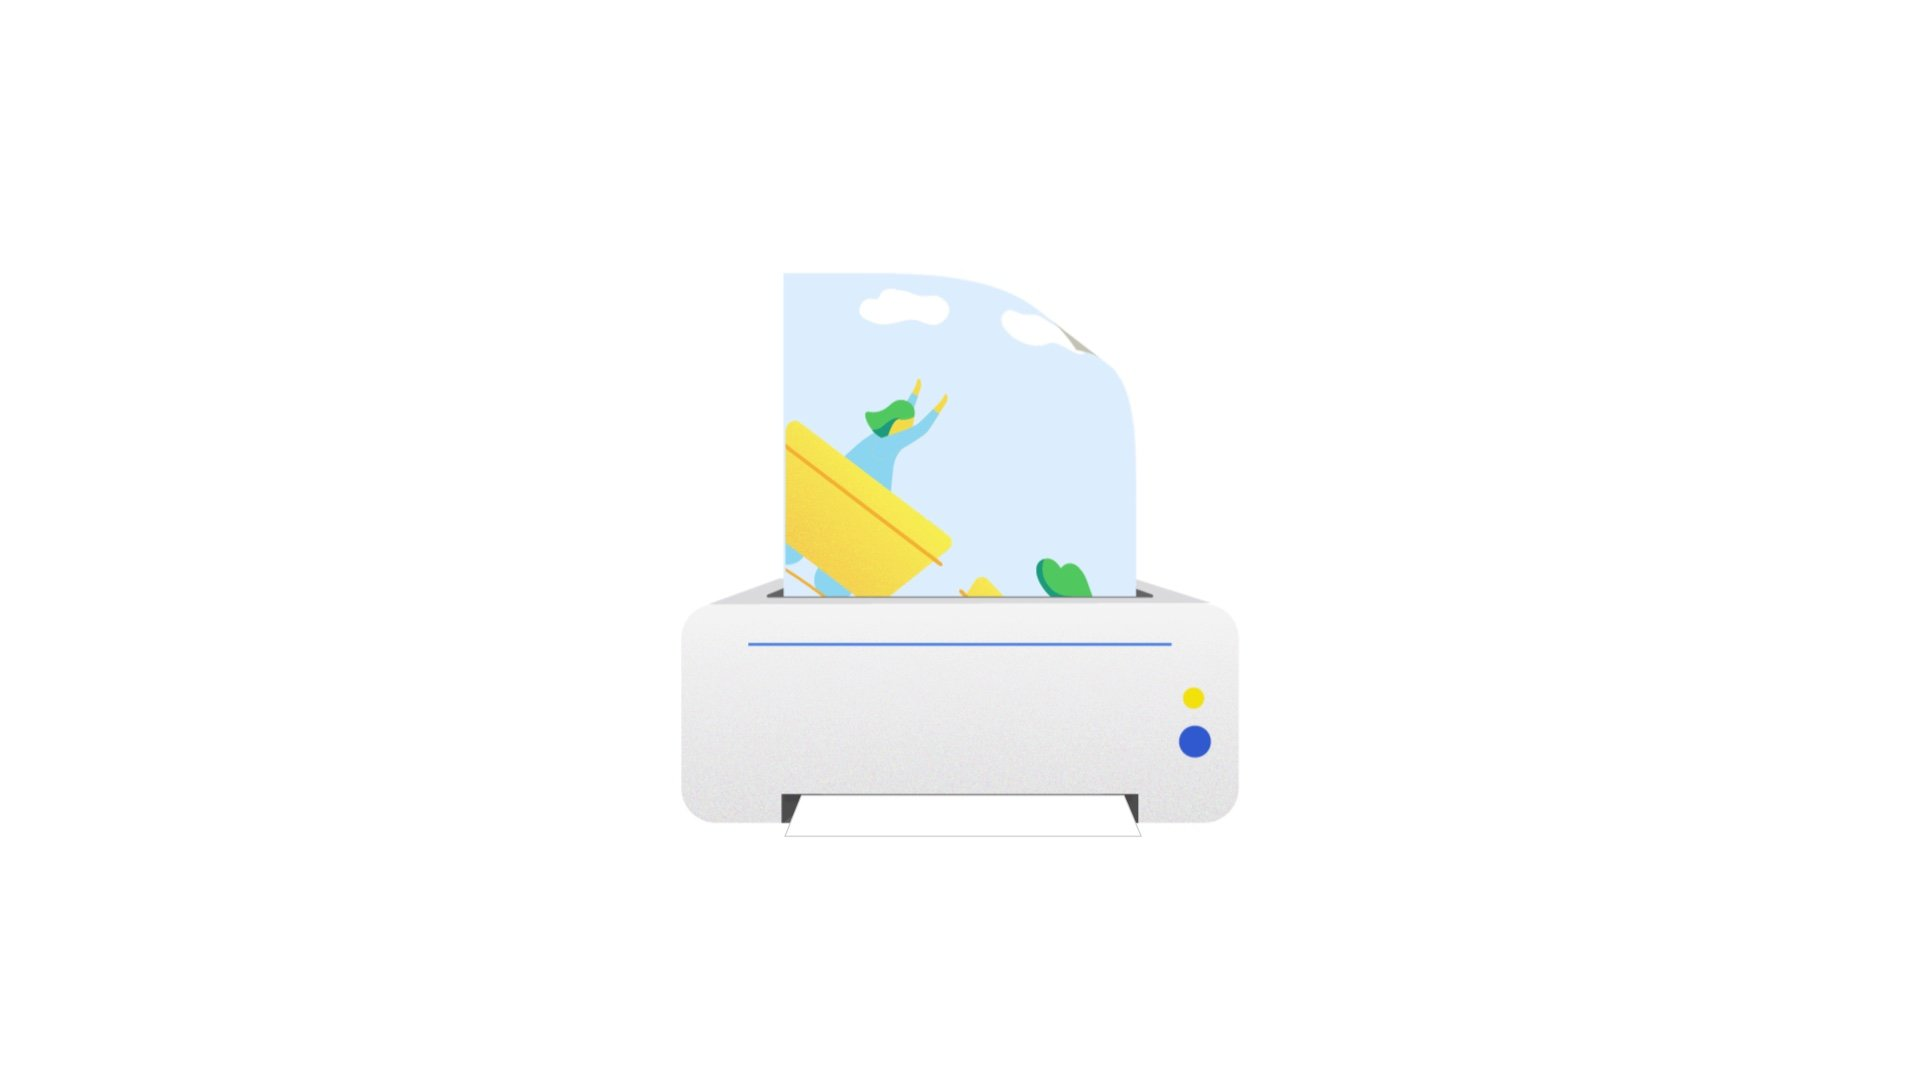 illustration for an animation of Apigee, a Google Cloud Service. It shows a printer